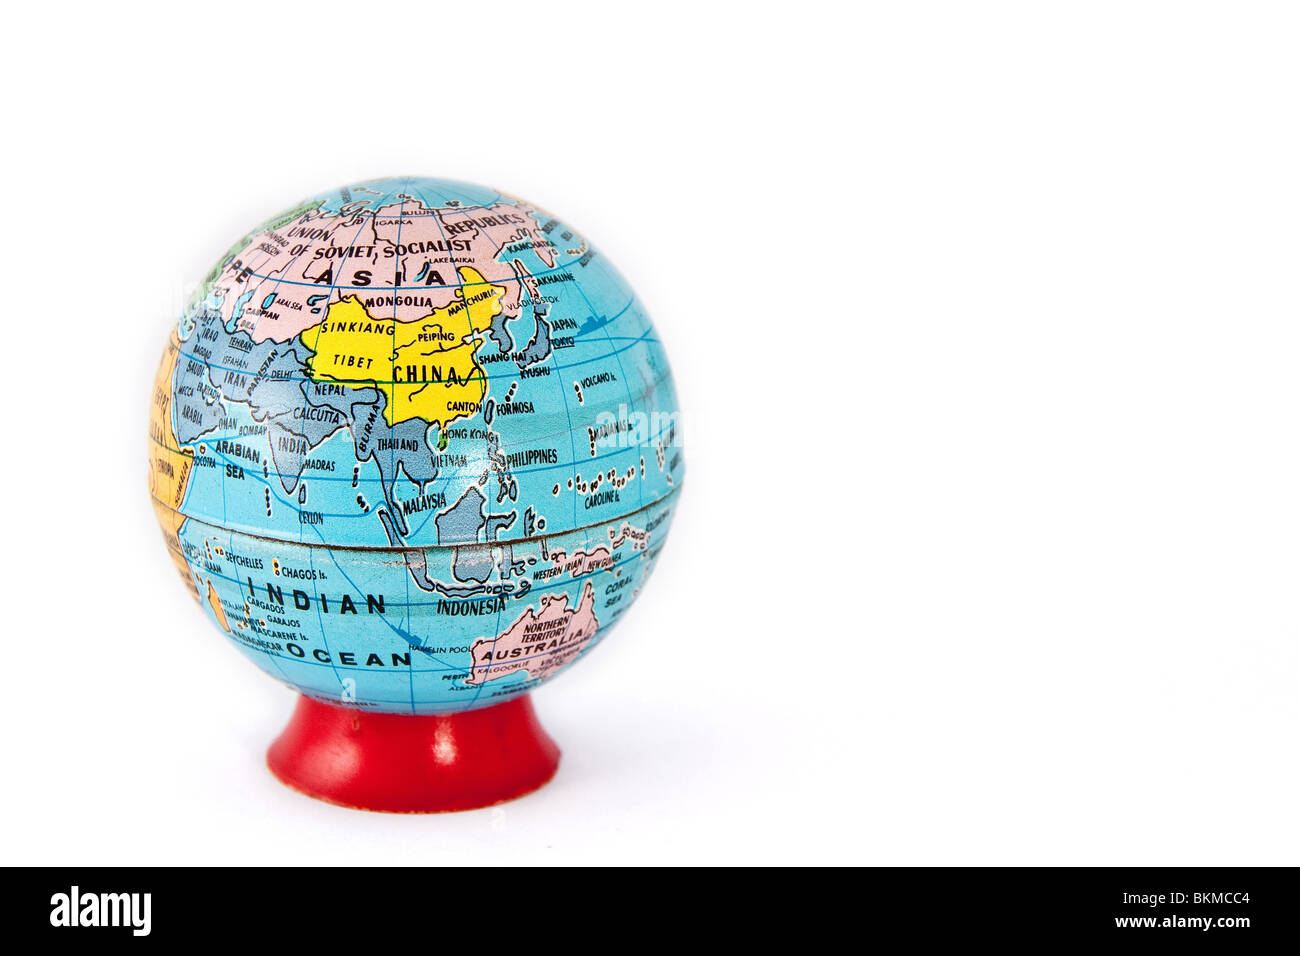 A model terrain globe. Asia and Oceania is shown - Stock Image